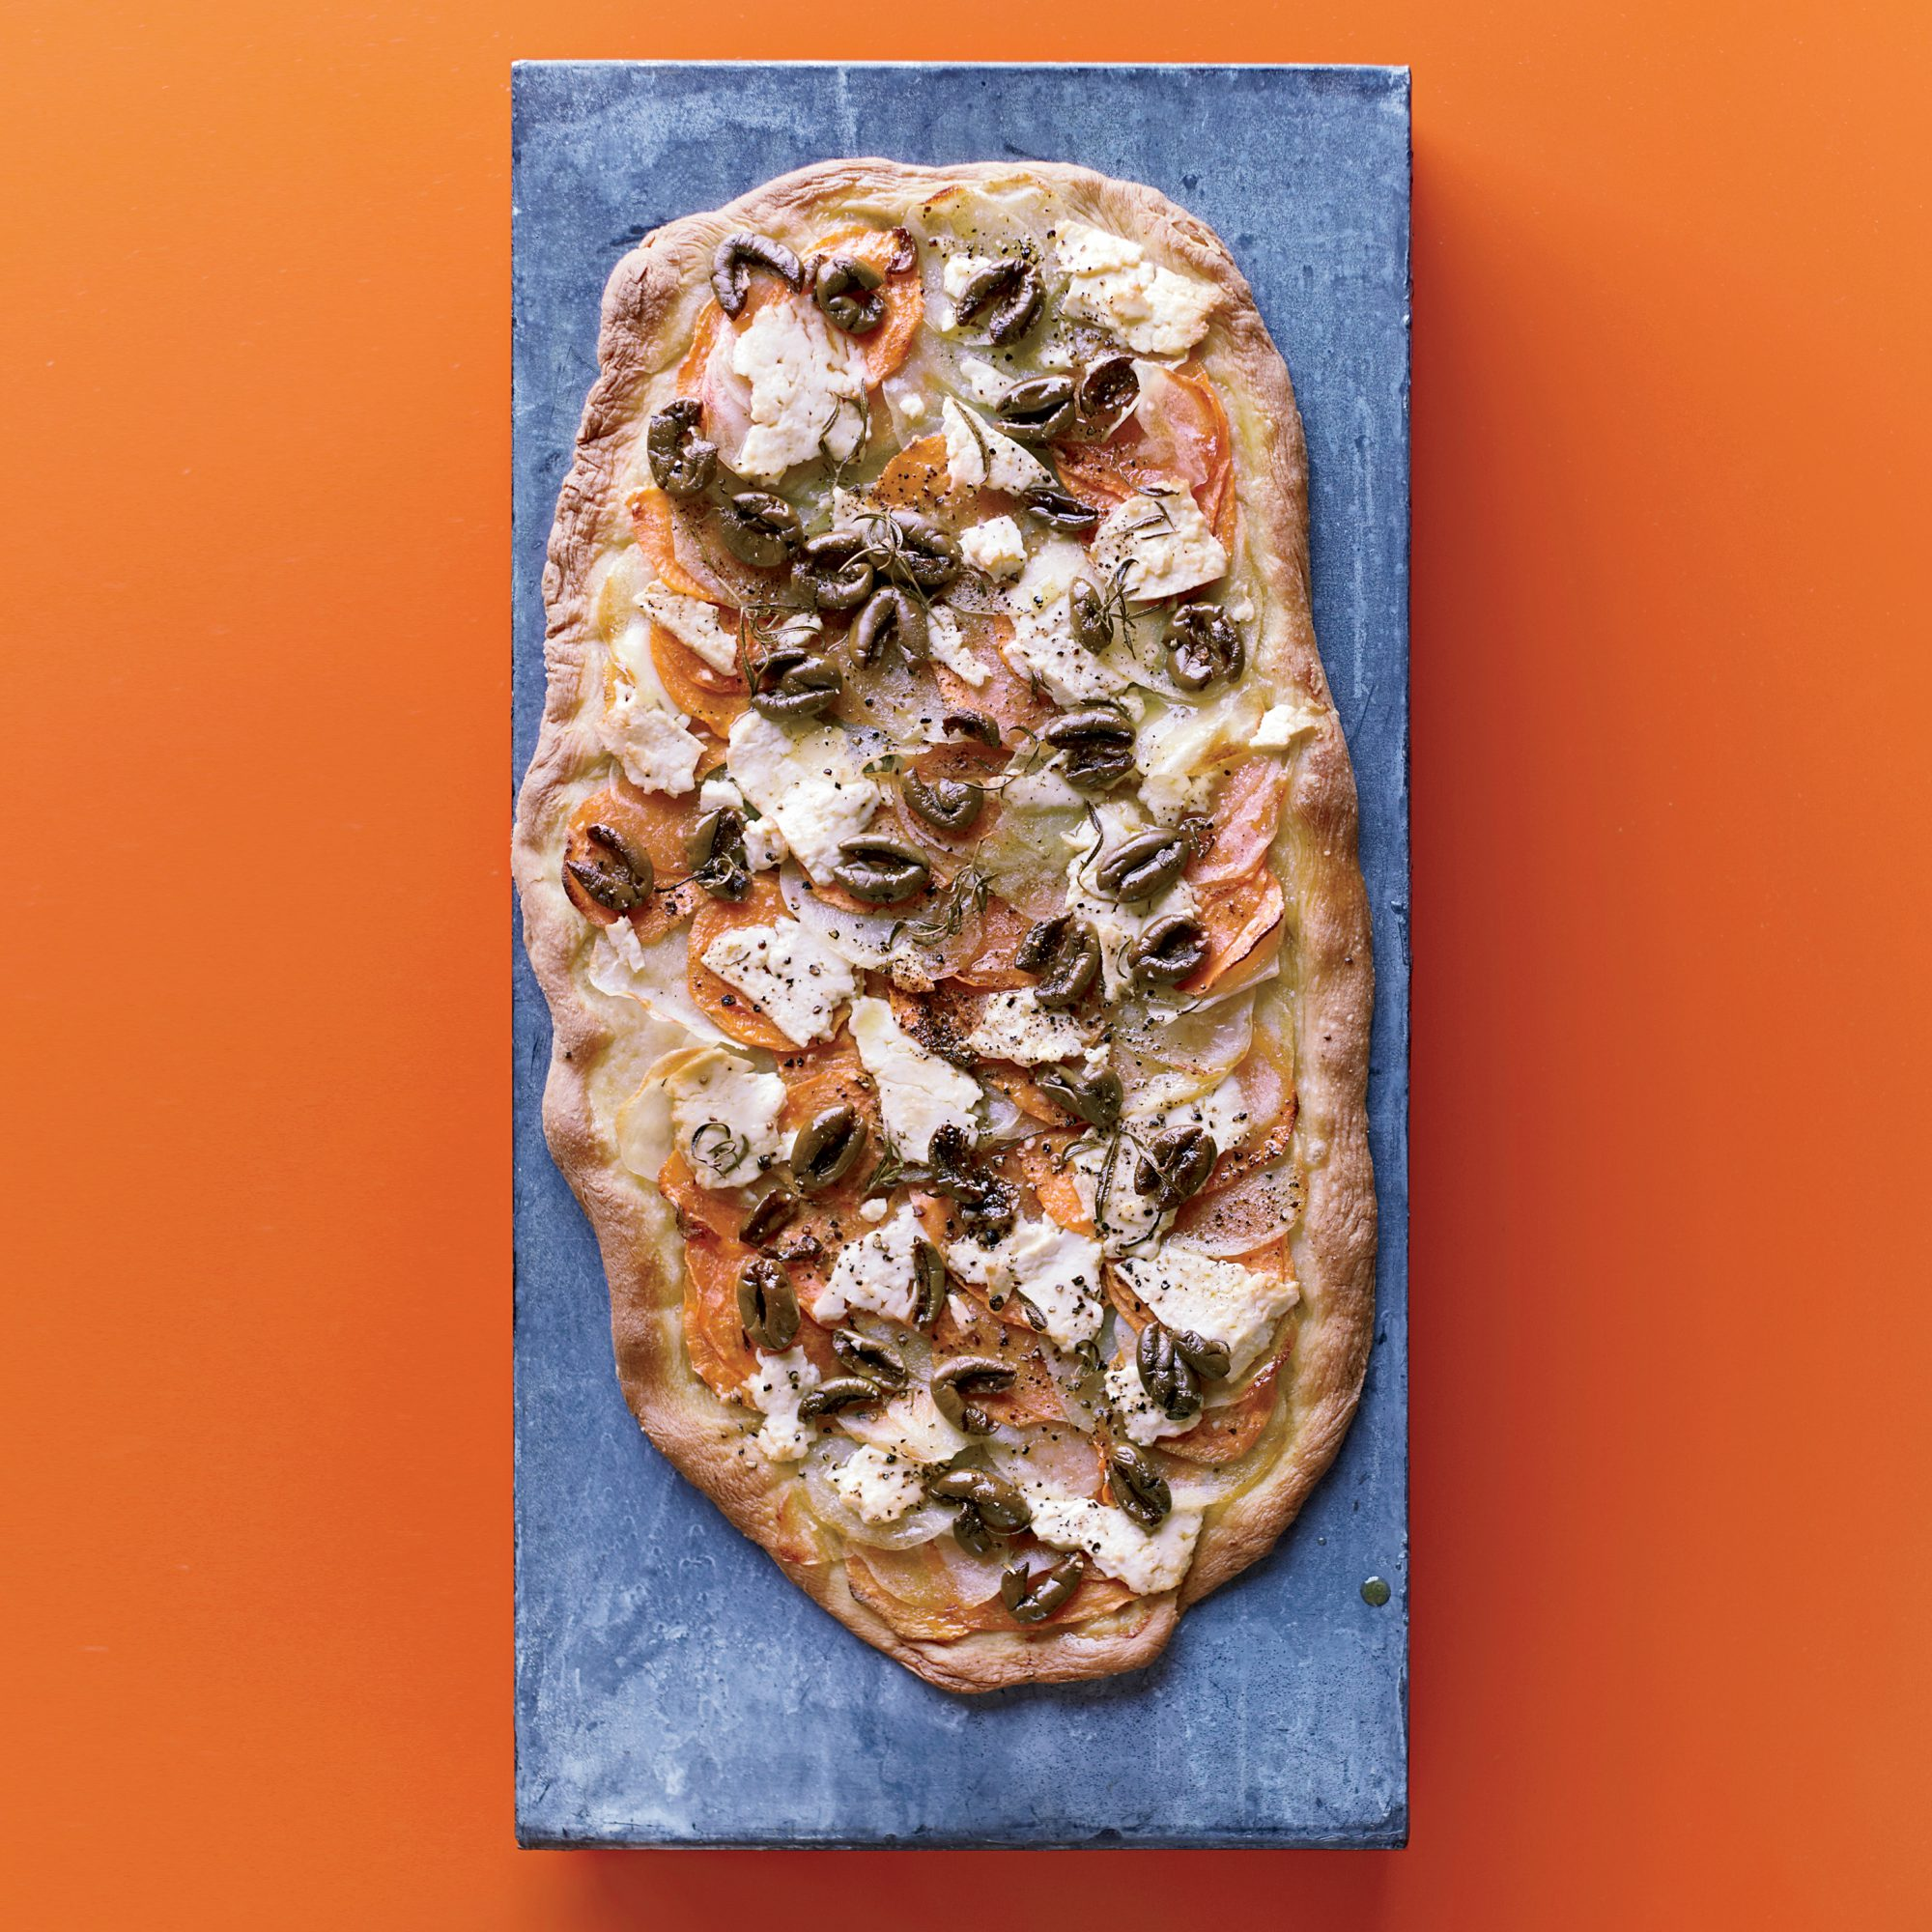 201109-r-two-potato-flatbread-with-olives-and-feta.jpg